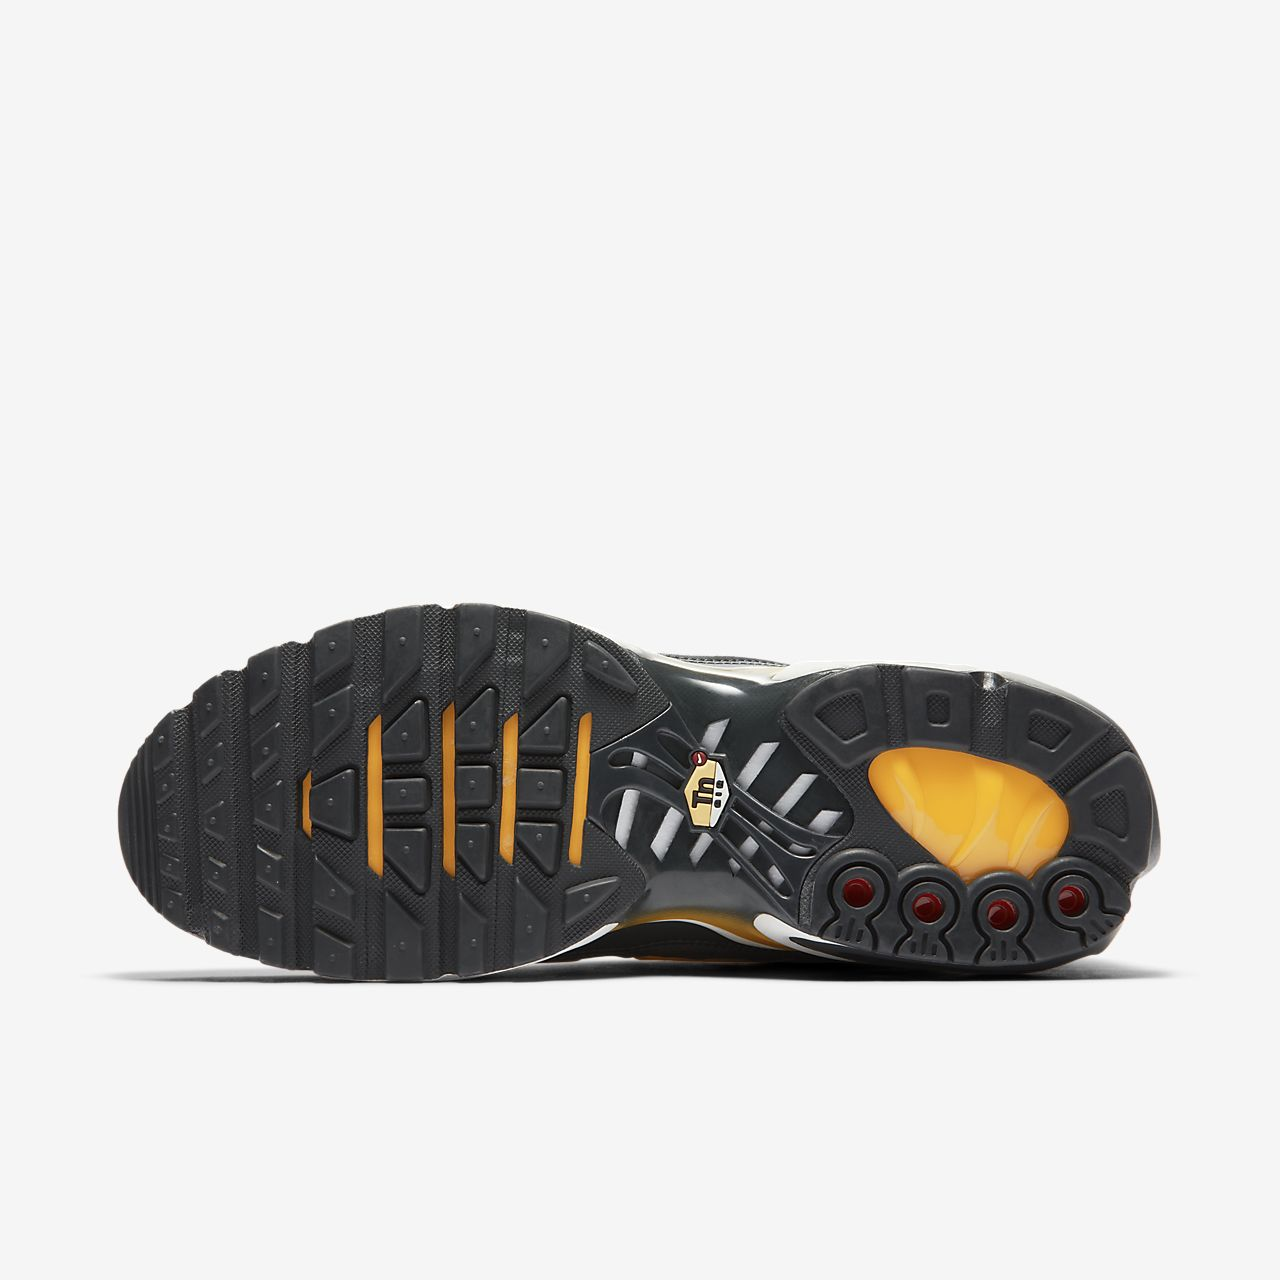 new styles a676b 7d6c2 ... Chaussure Nike Air Max Plus SE pour Homme